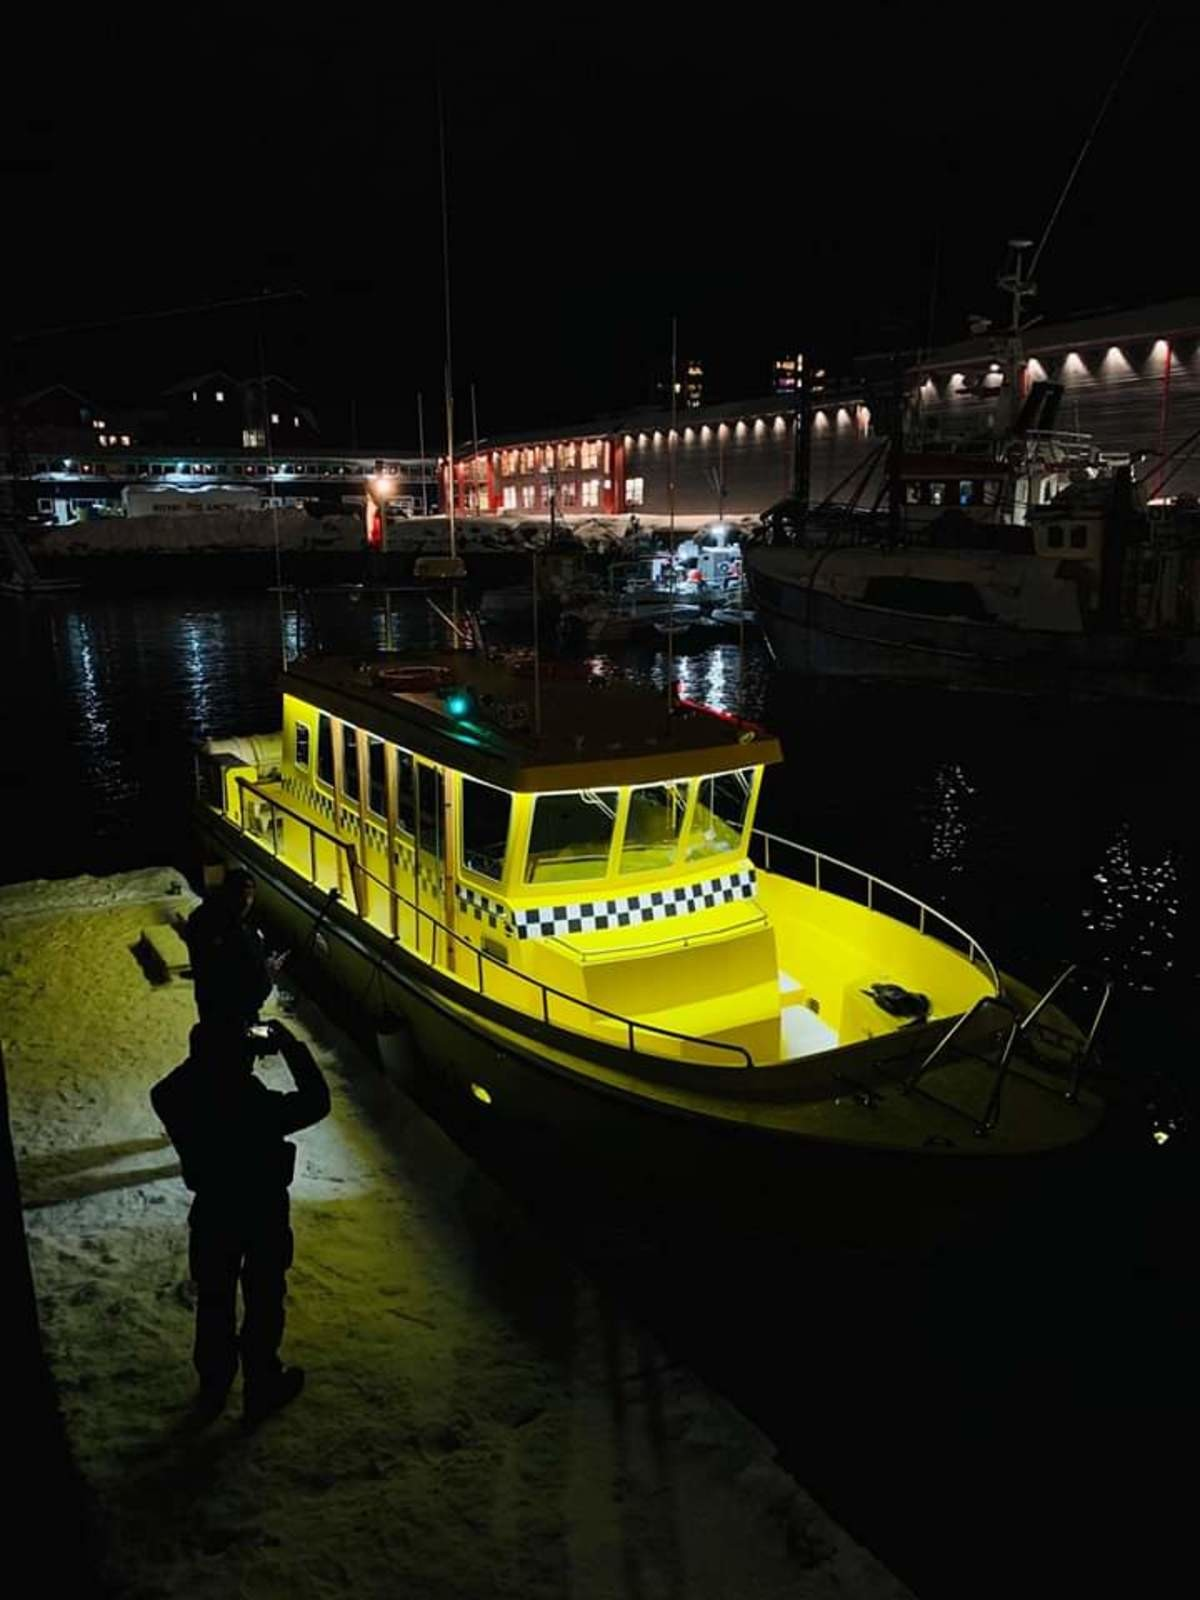 In Greenland, we have Taxi boats.. Cost a lot tho... We have them in Norway too. They are pretty neat, and can manage to dock with only 1m sea, because of the jet motor.